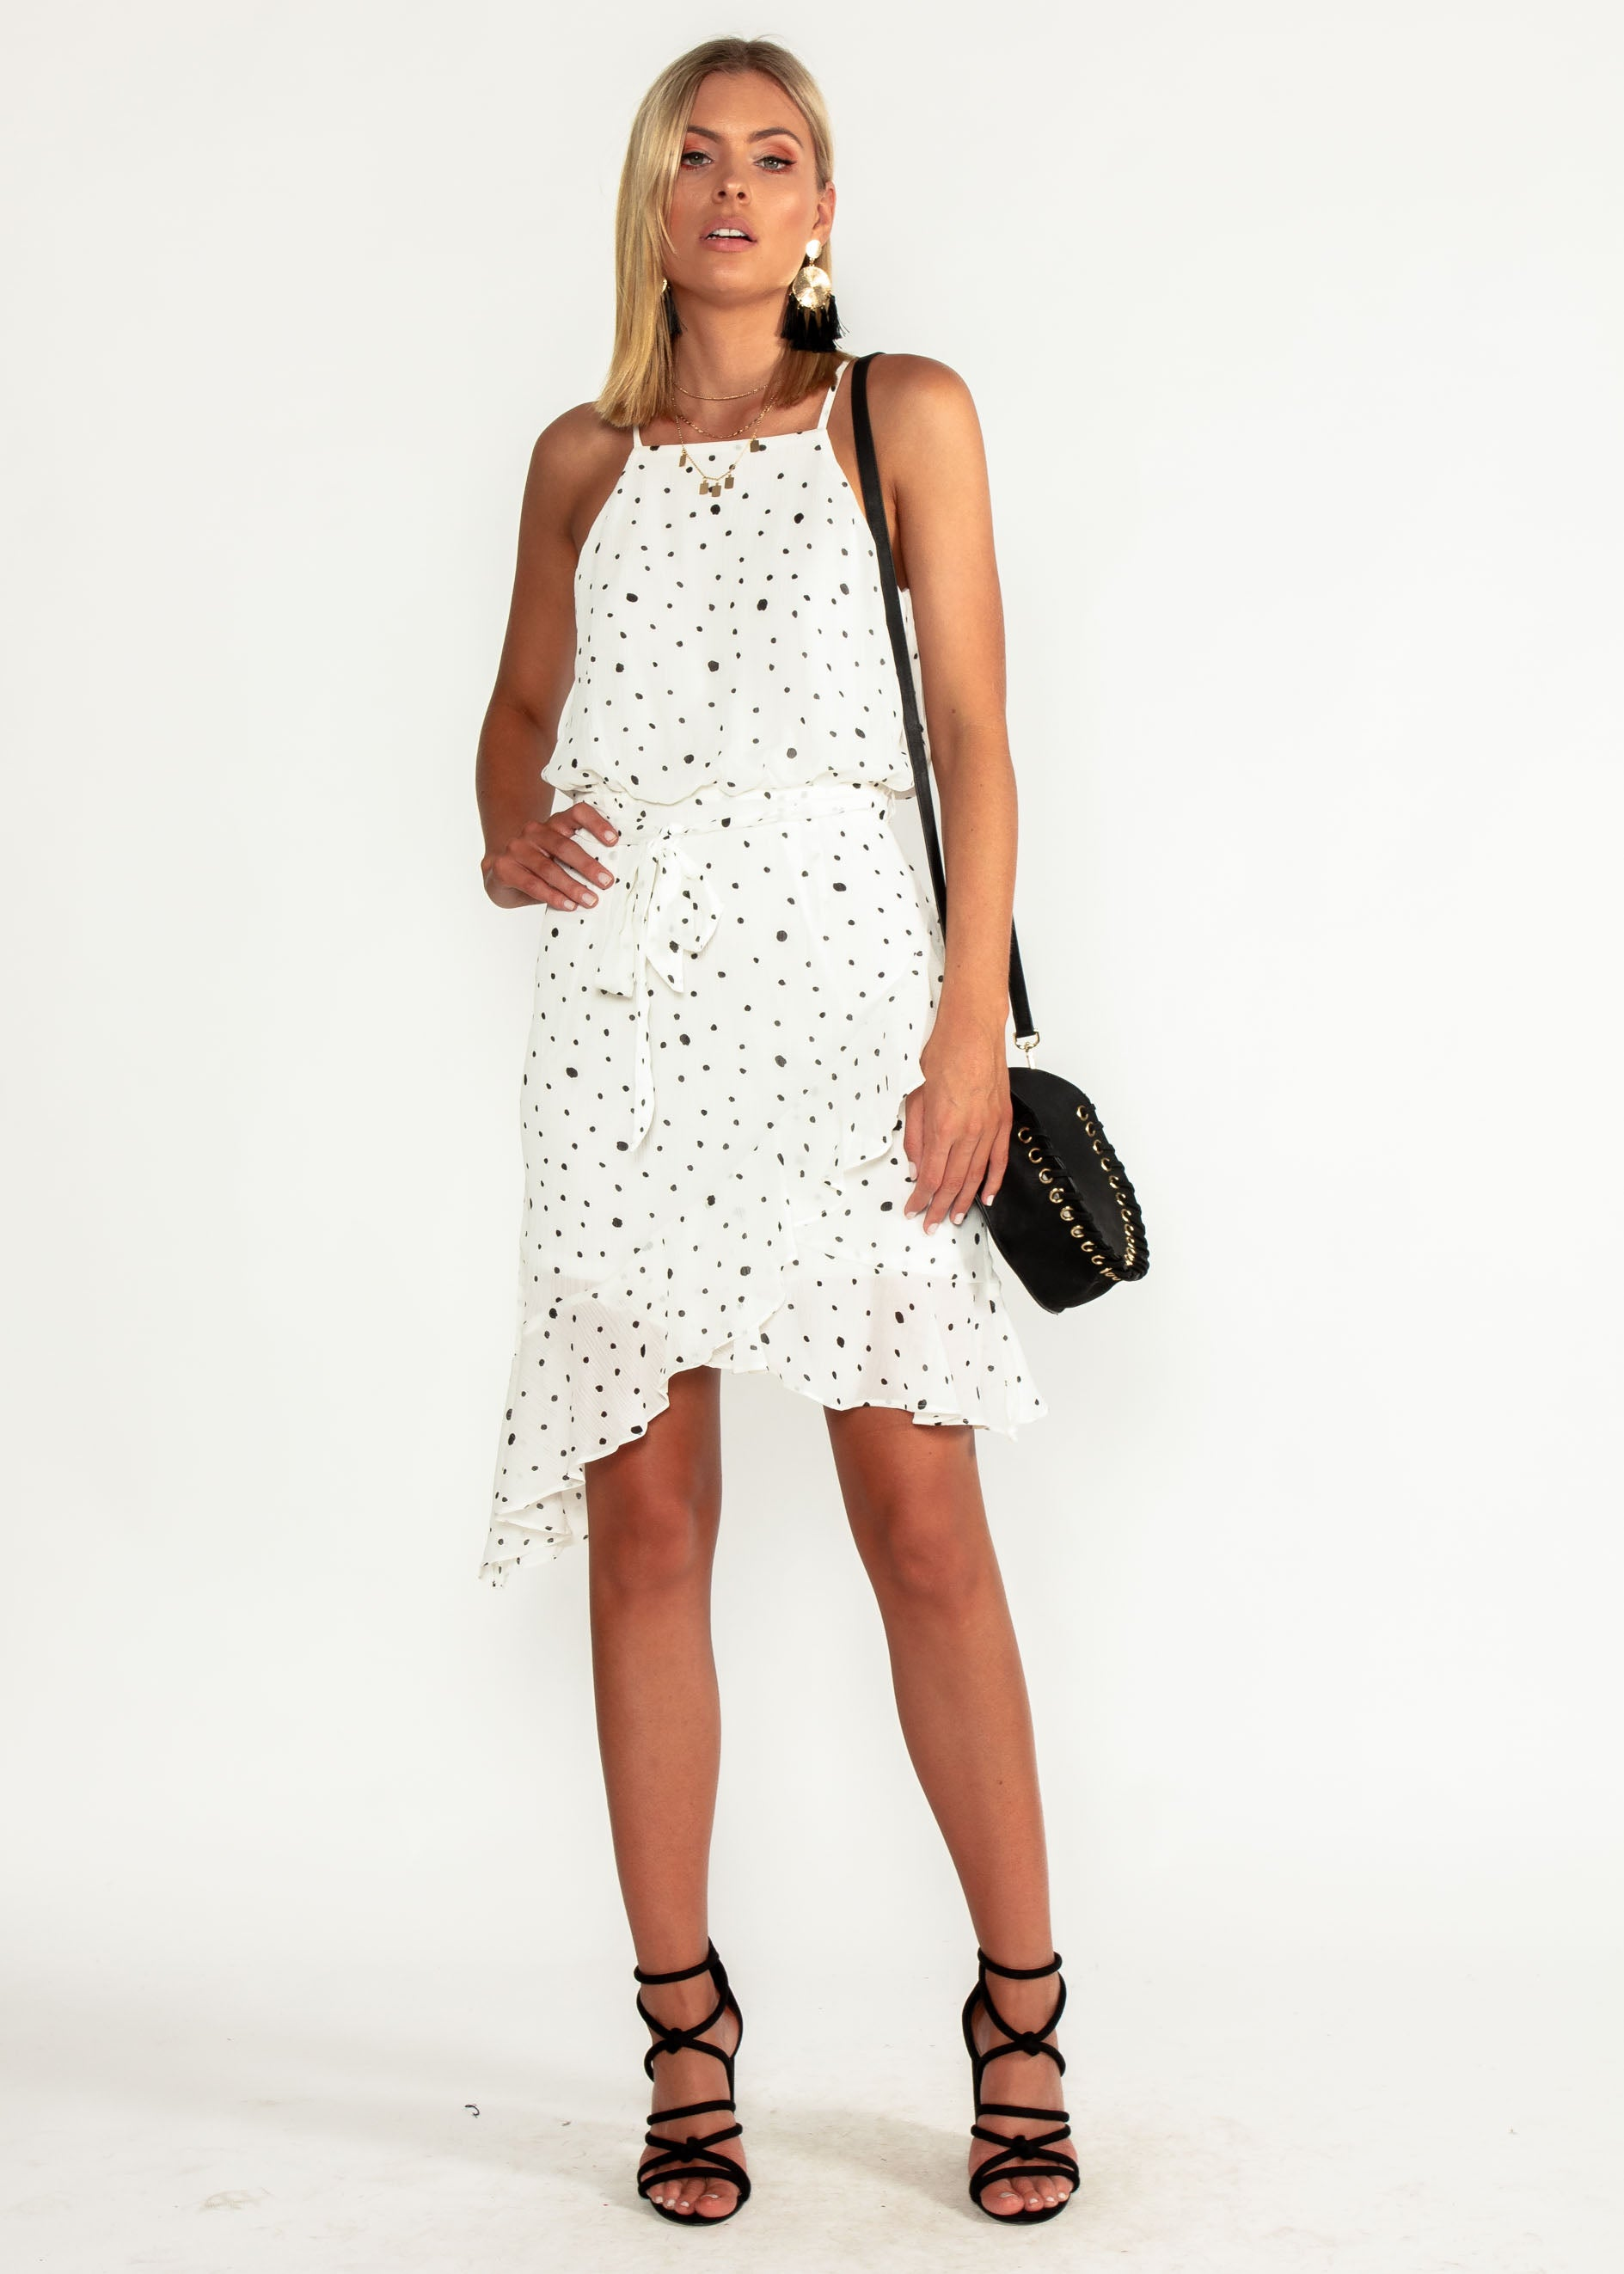 Thalia Chiffon Dress w/ Tie - White Spot